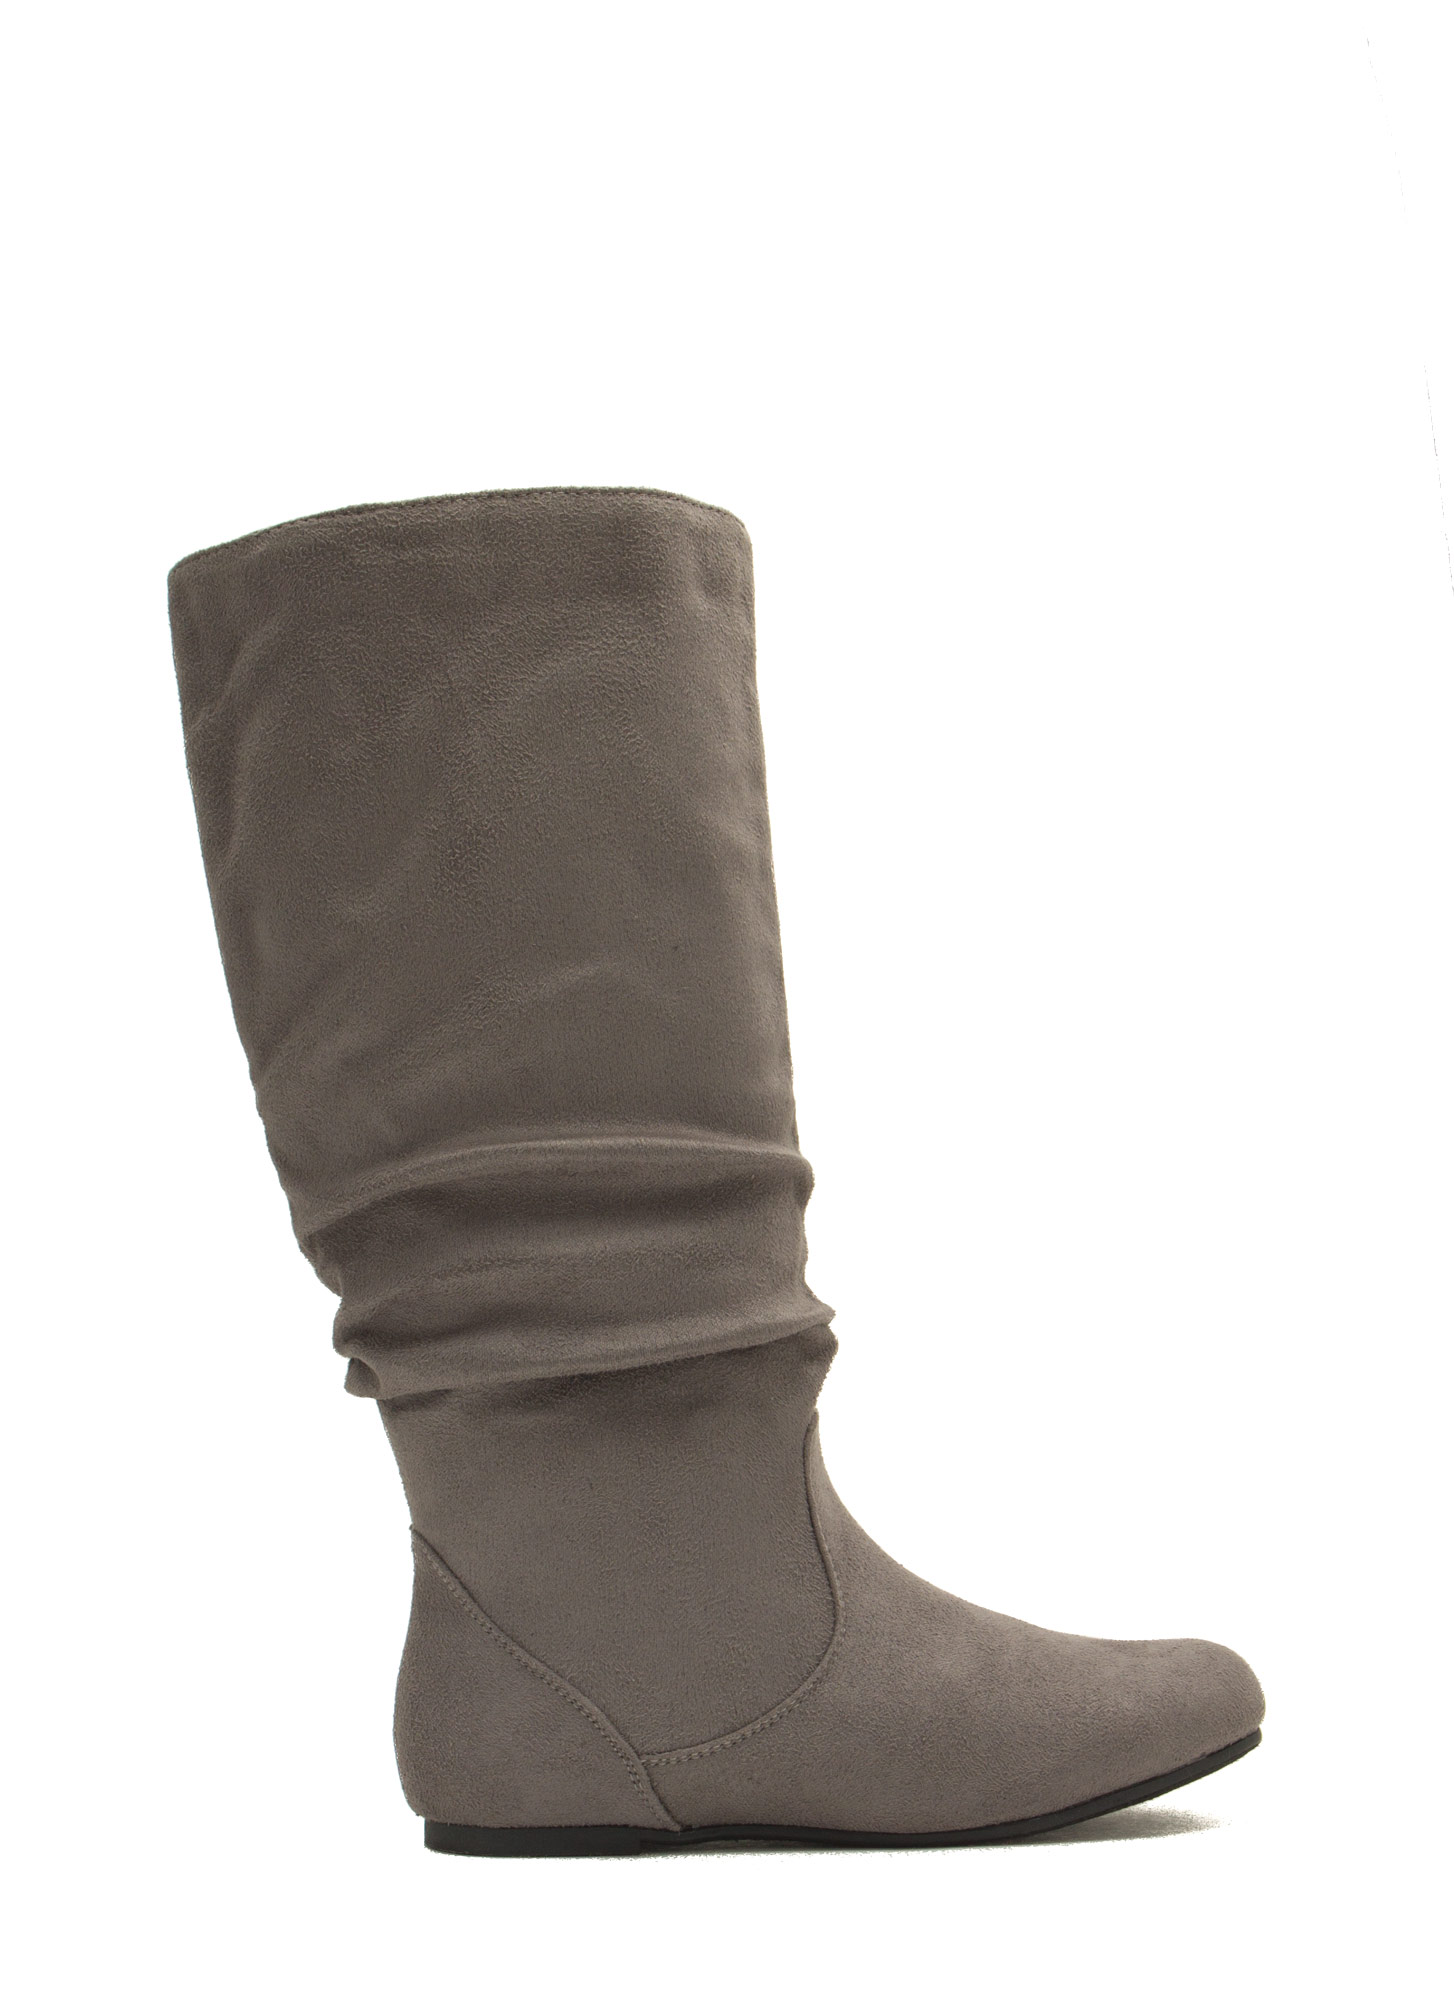 suede slouch boots uk images